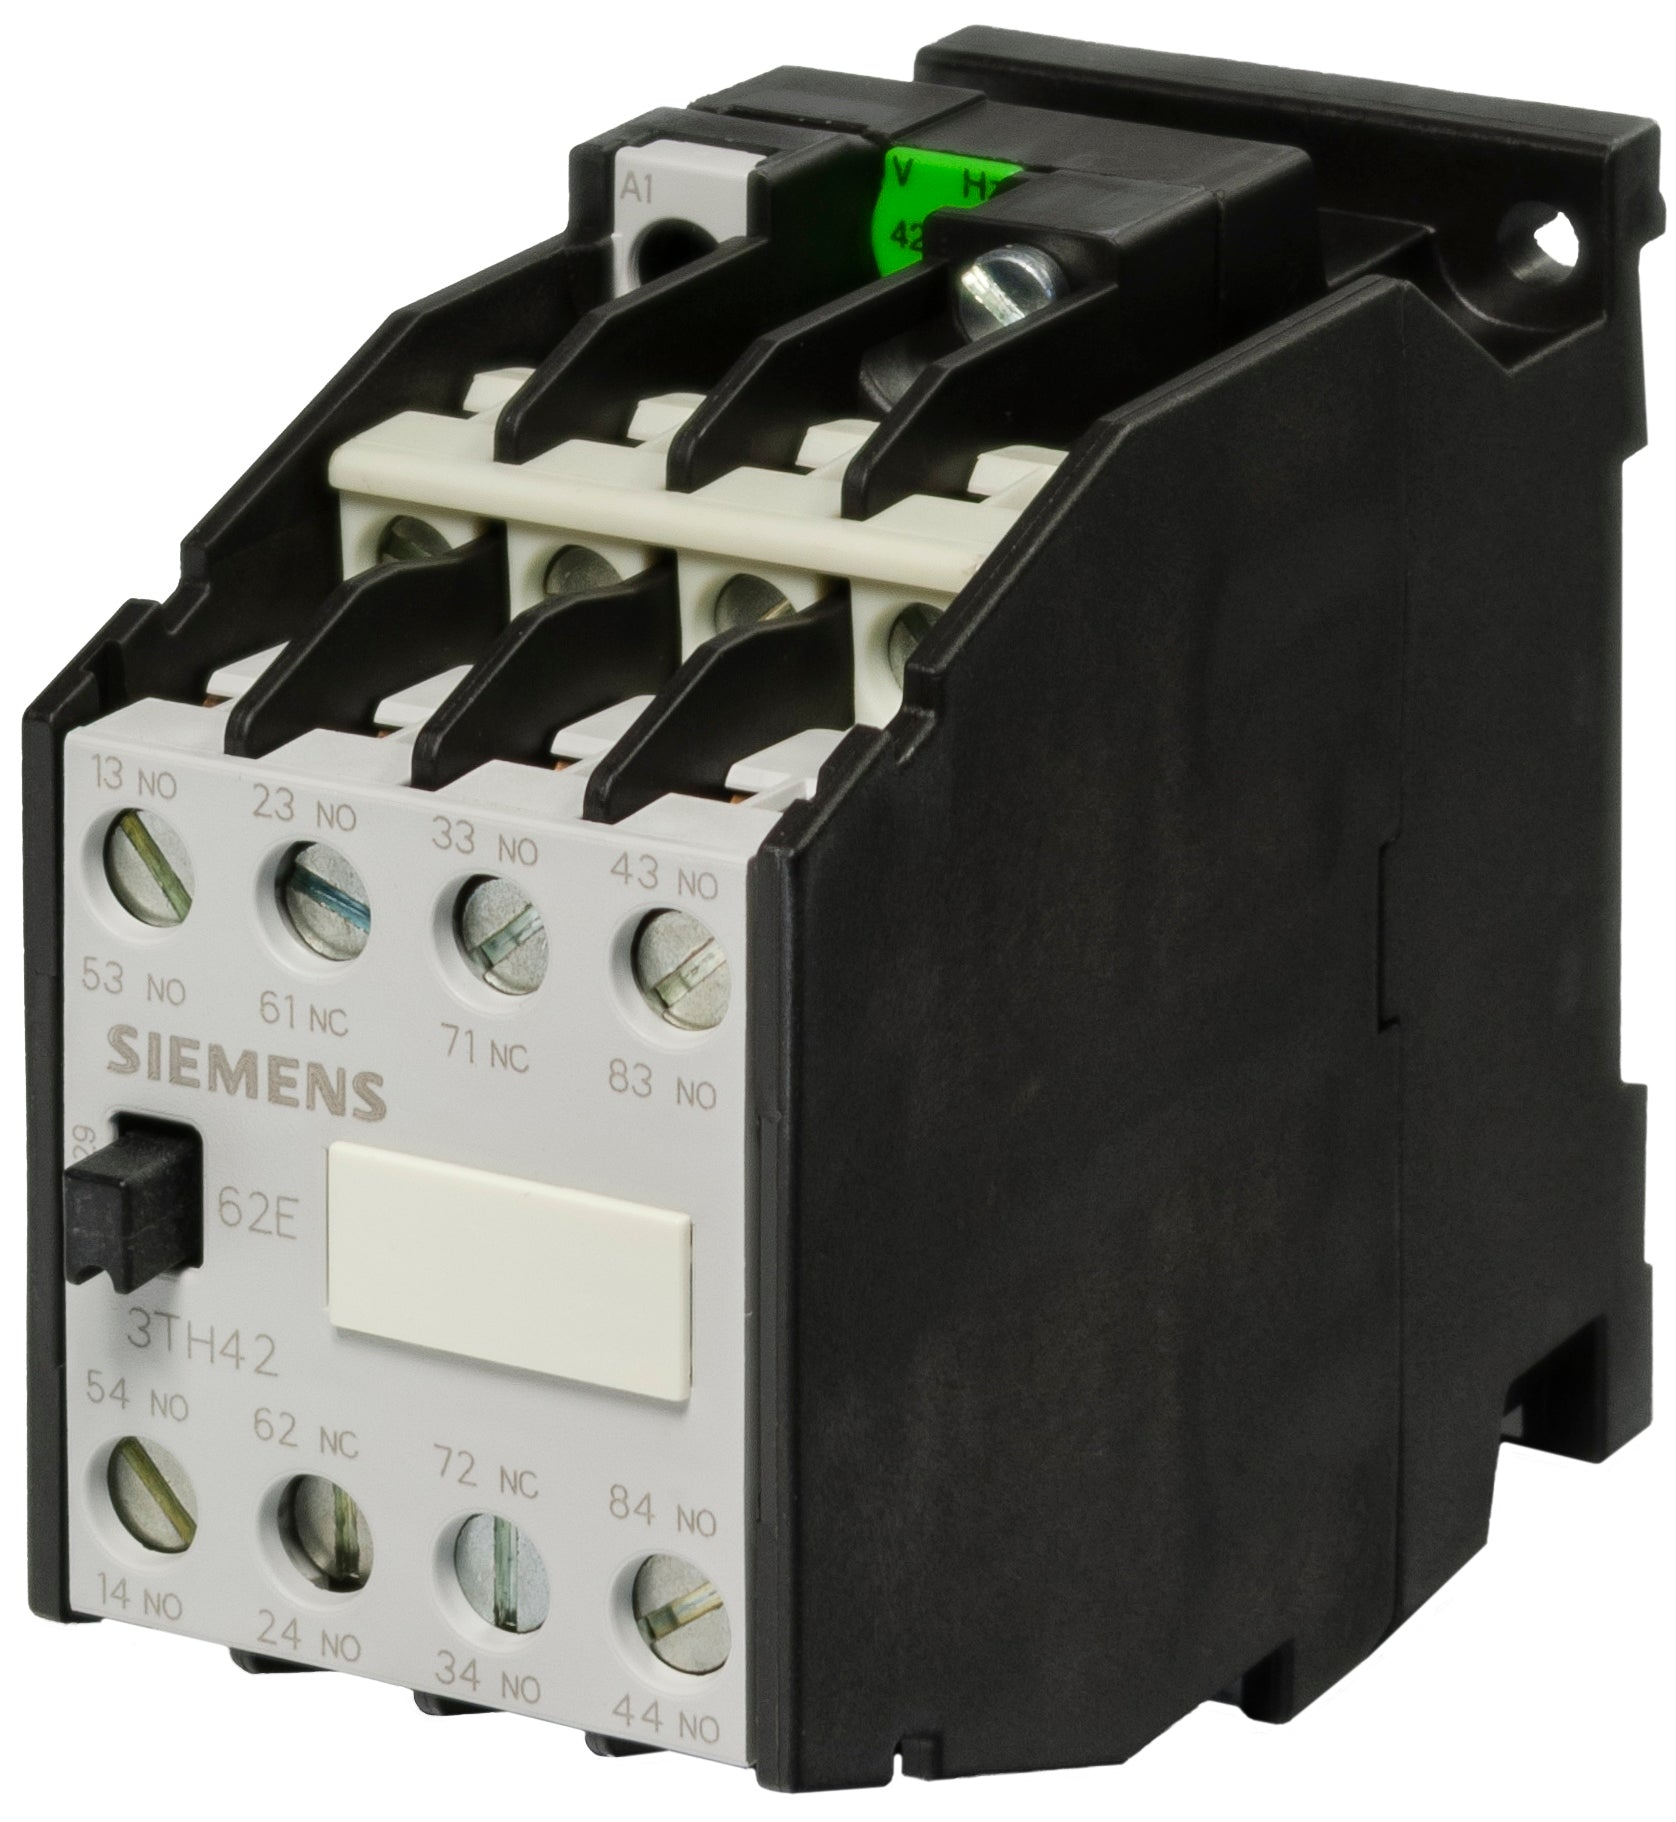 3TH4262-0A Siemens Control Relay